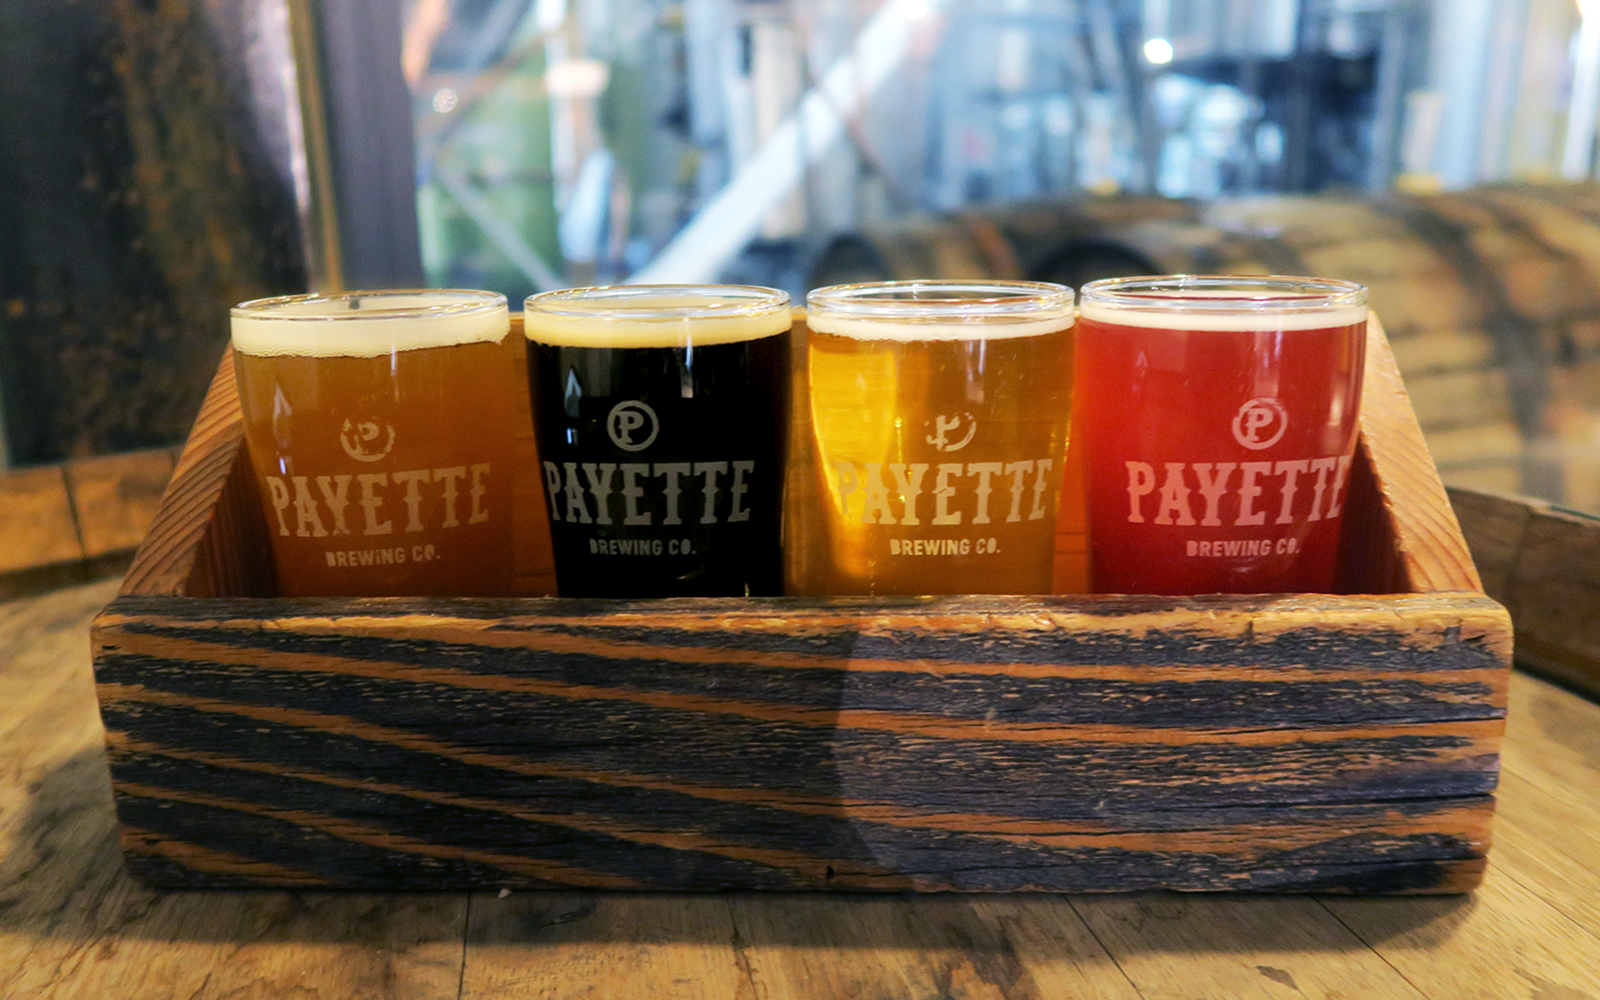 Payette-Brewery.jpg?mtime=20180308104239#asset:100803